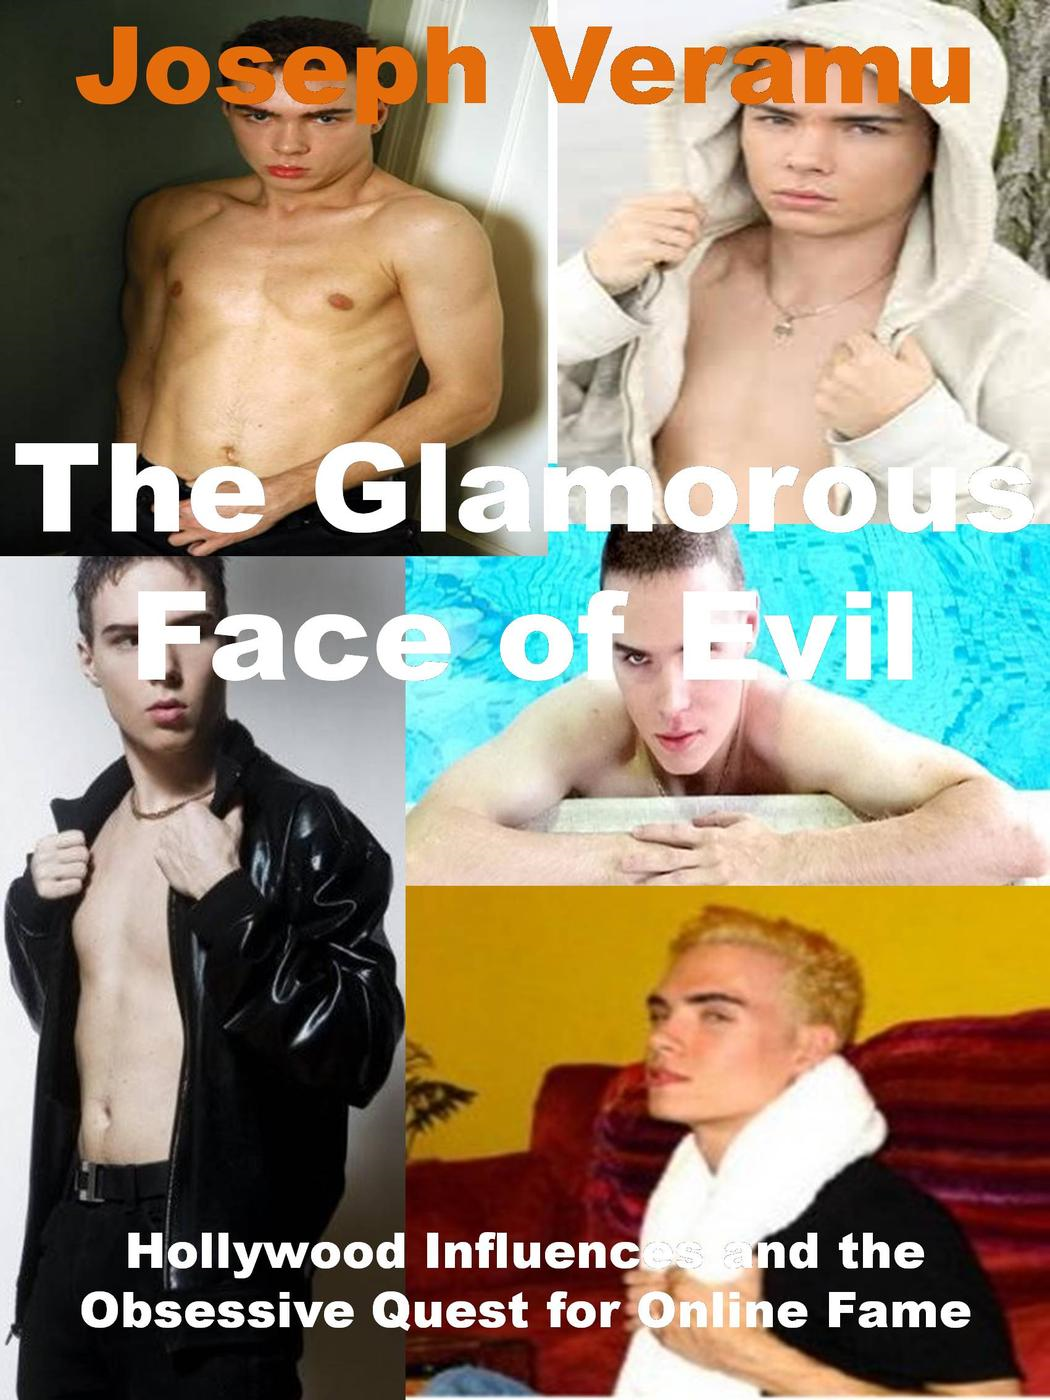 Joseph Veramu - The Glamorous Face of Evil: Hollywood Influences and the Obsession for Online Fame